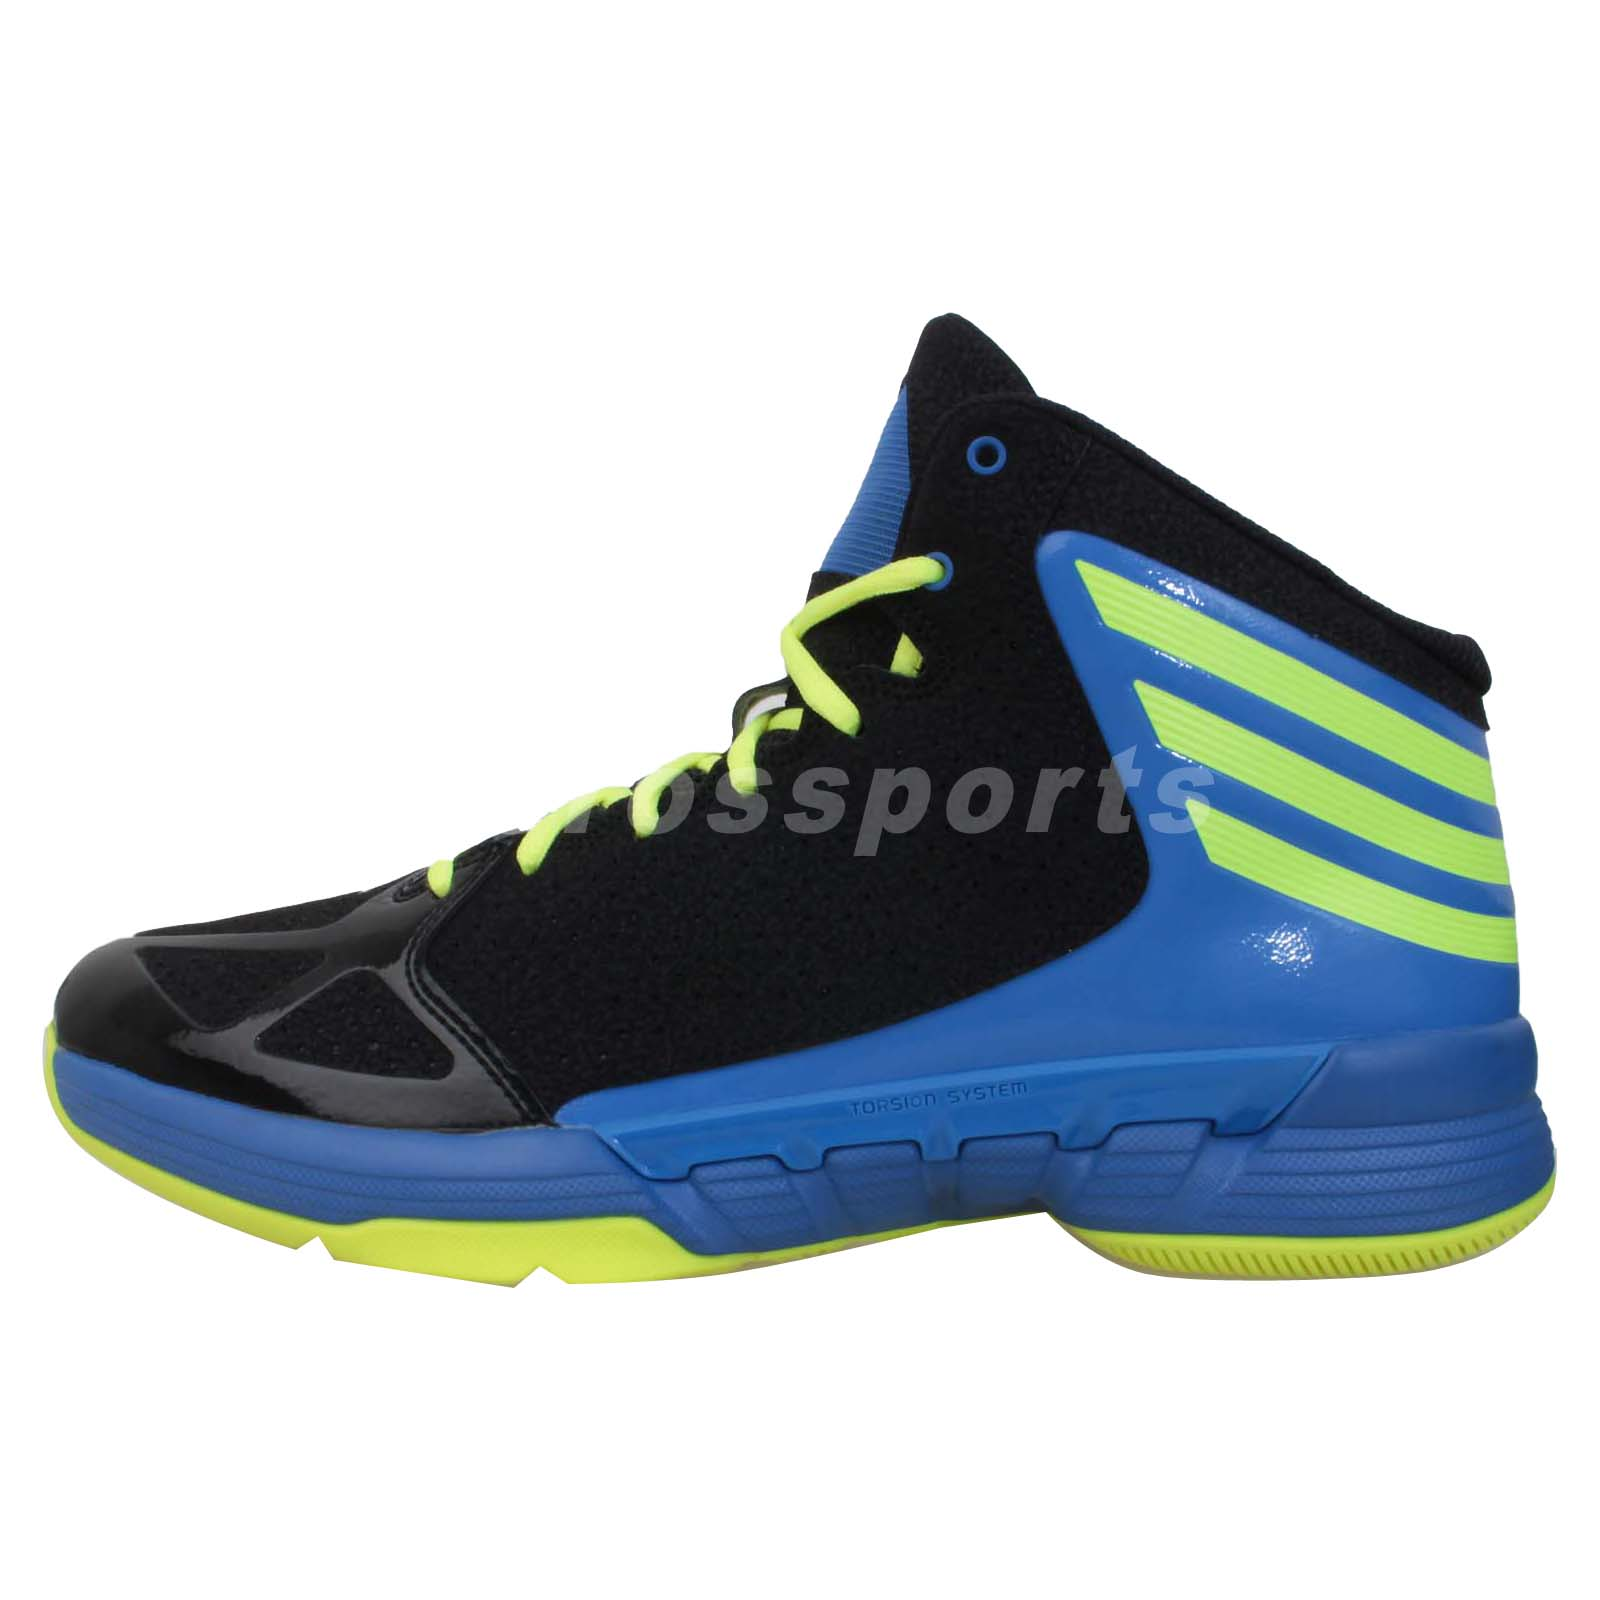 Shoes For Men 2013 Adidas Adidas Mad Hand...